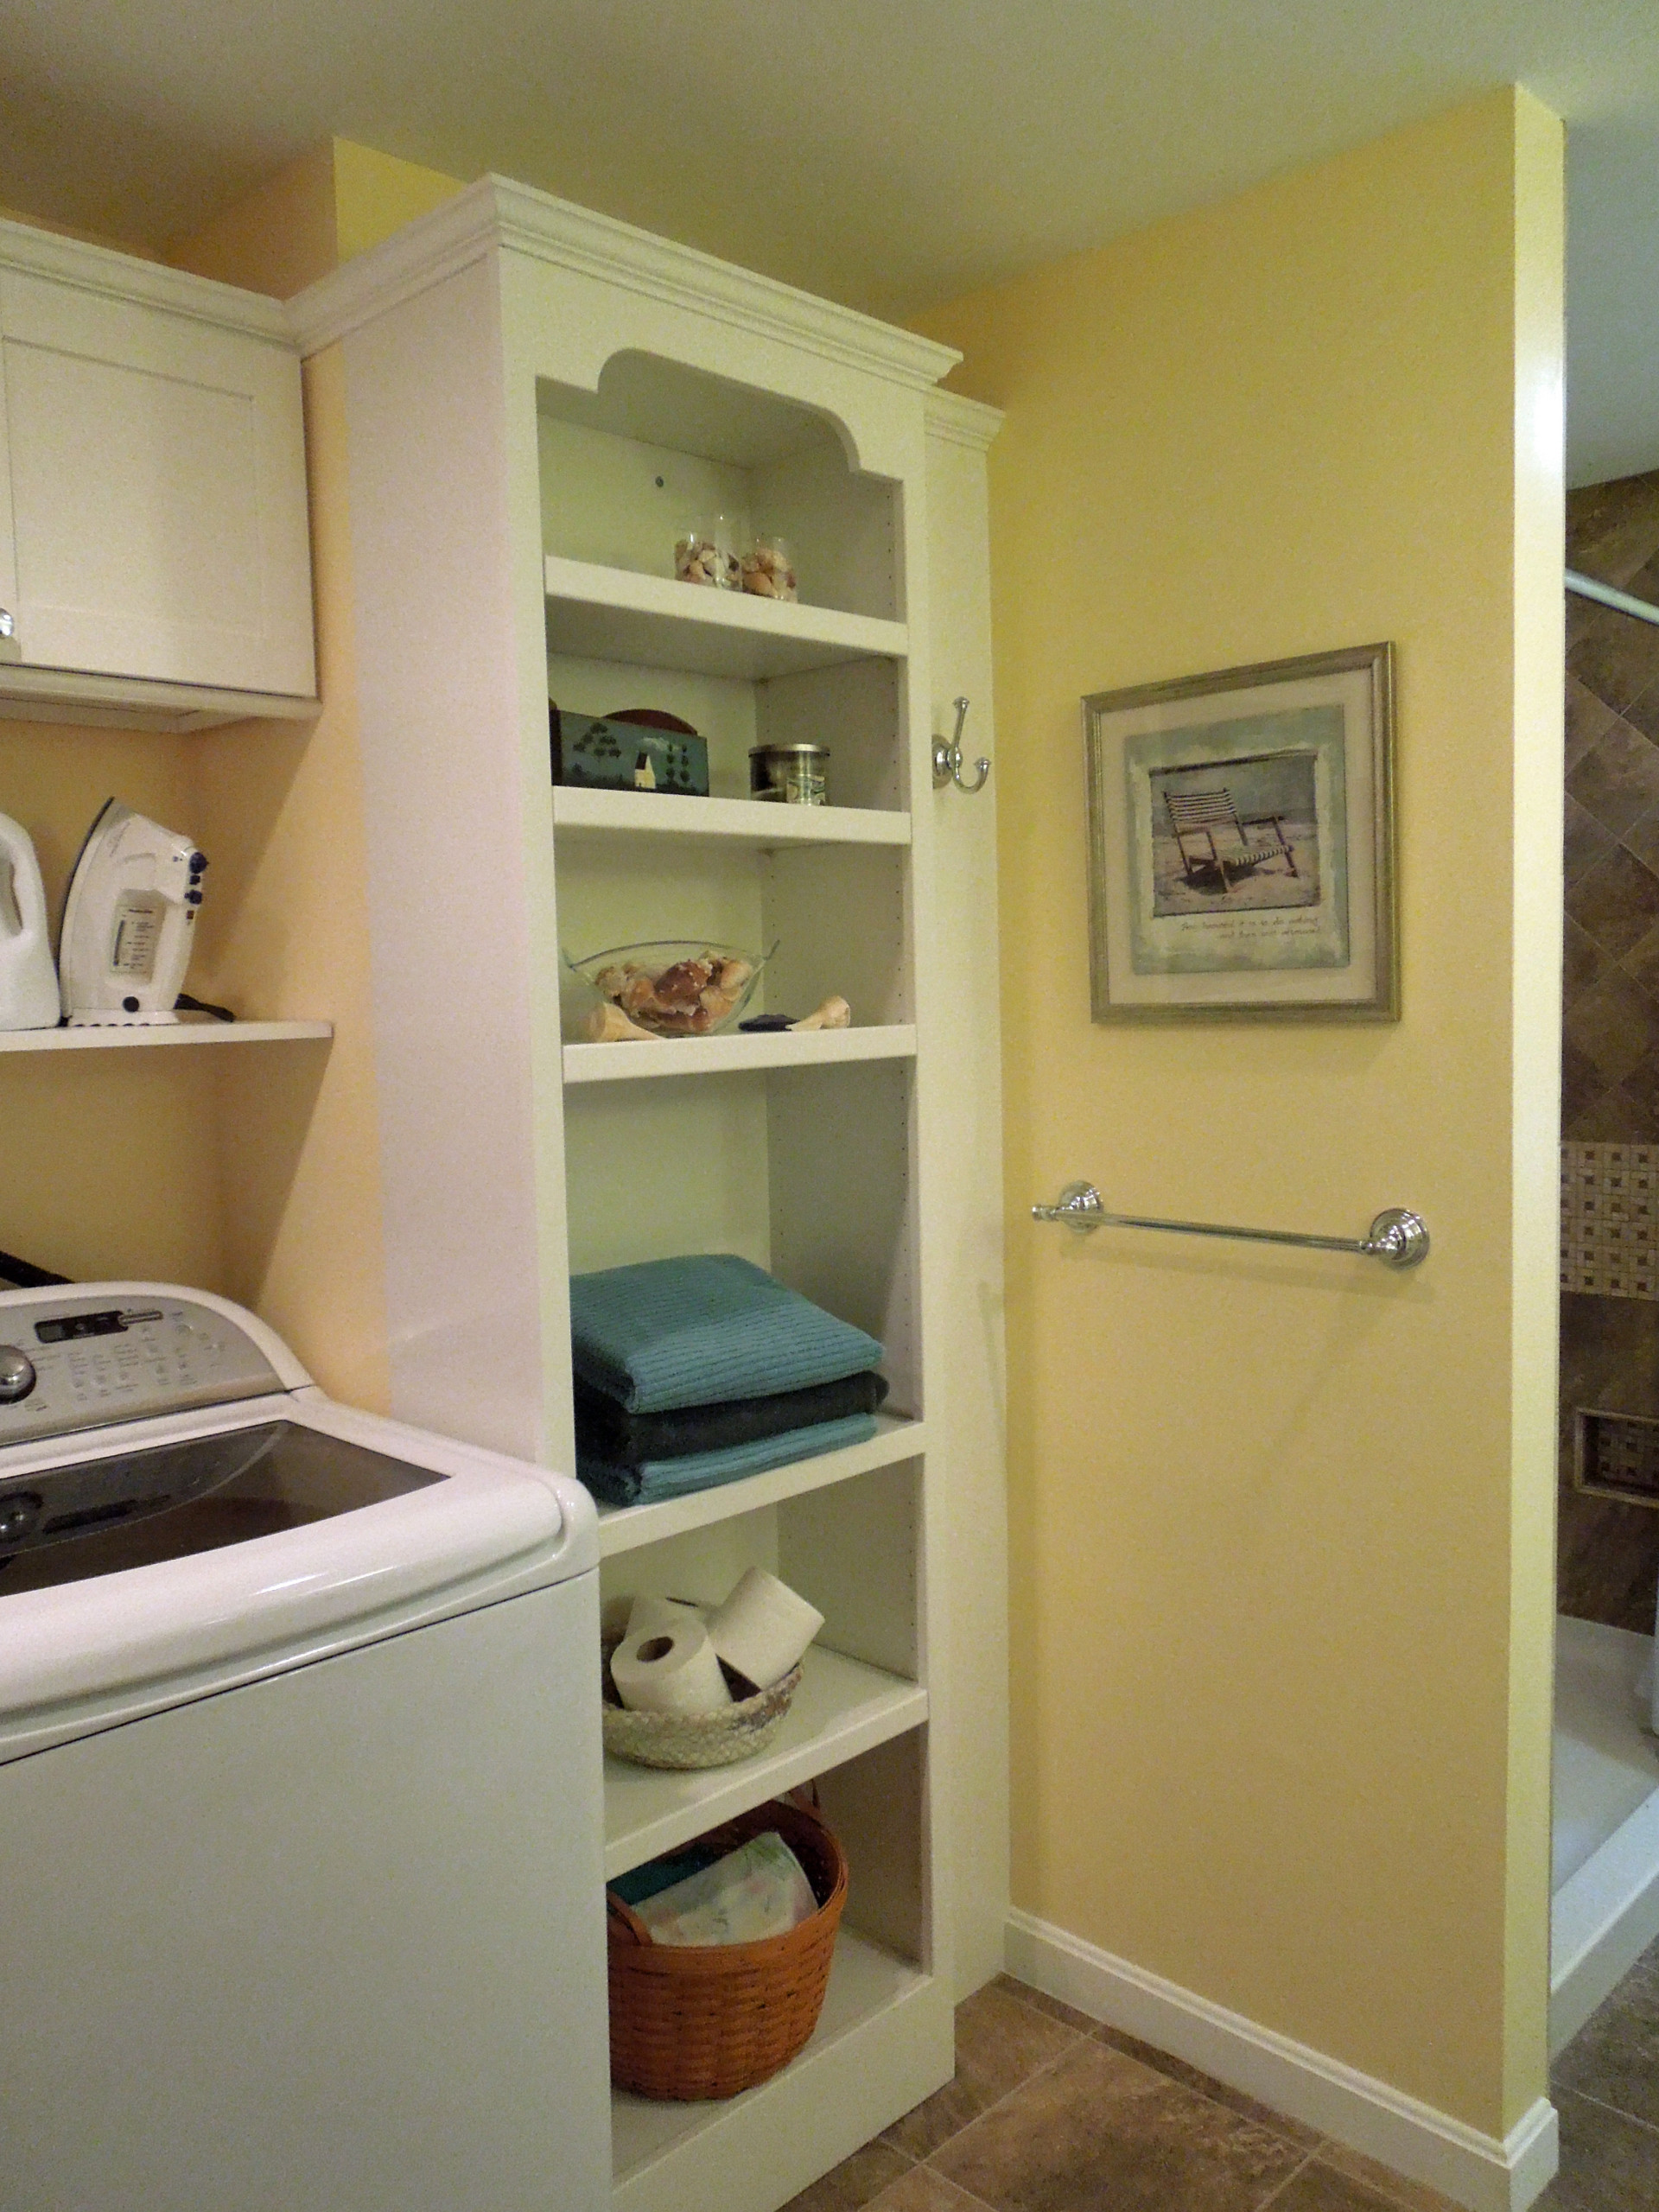 Sunny storage for a luxe laundry room and bath.